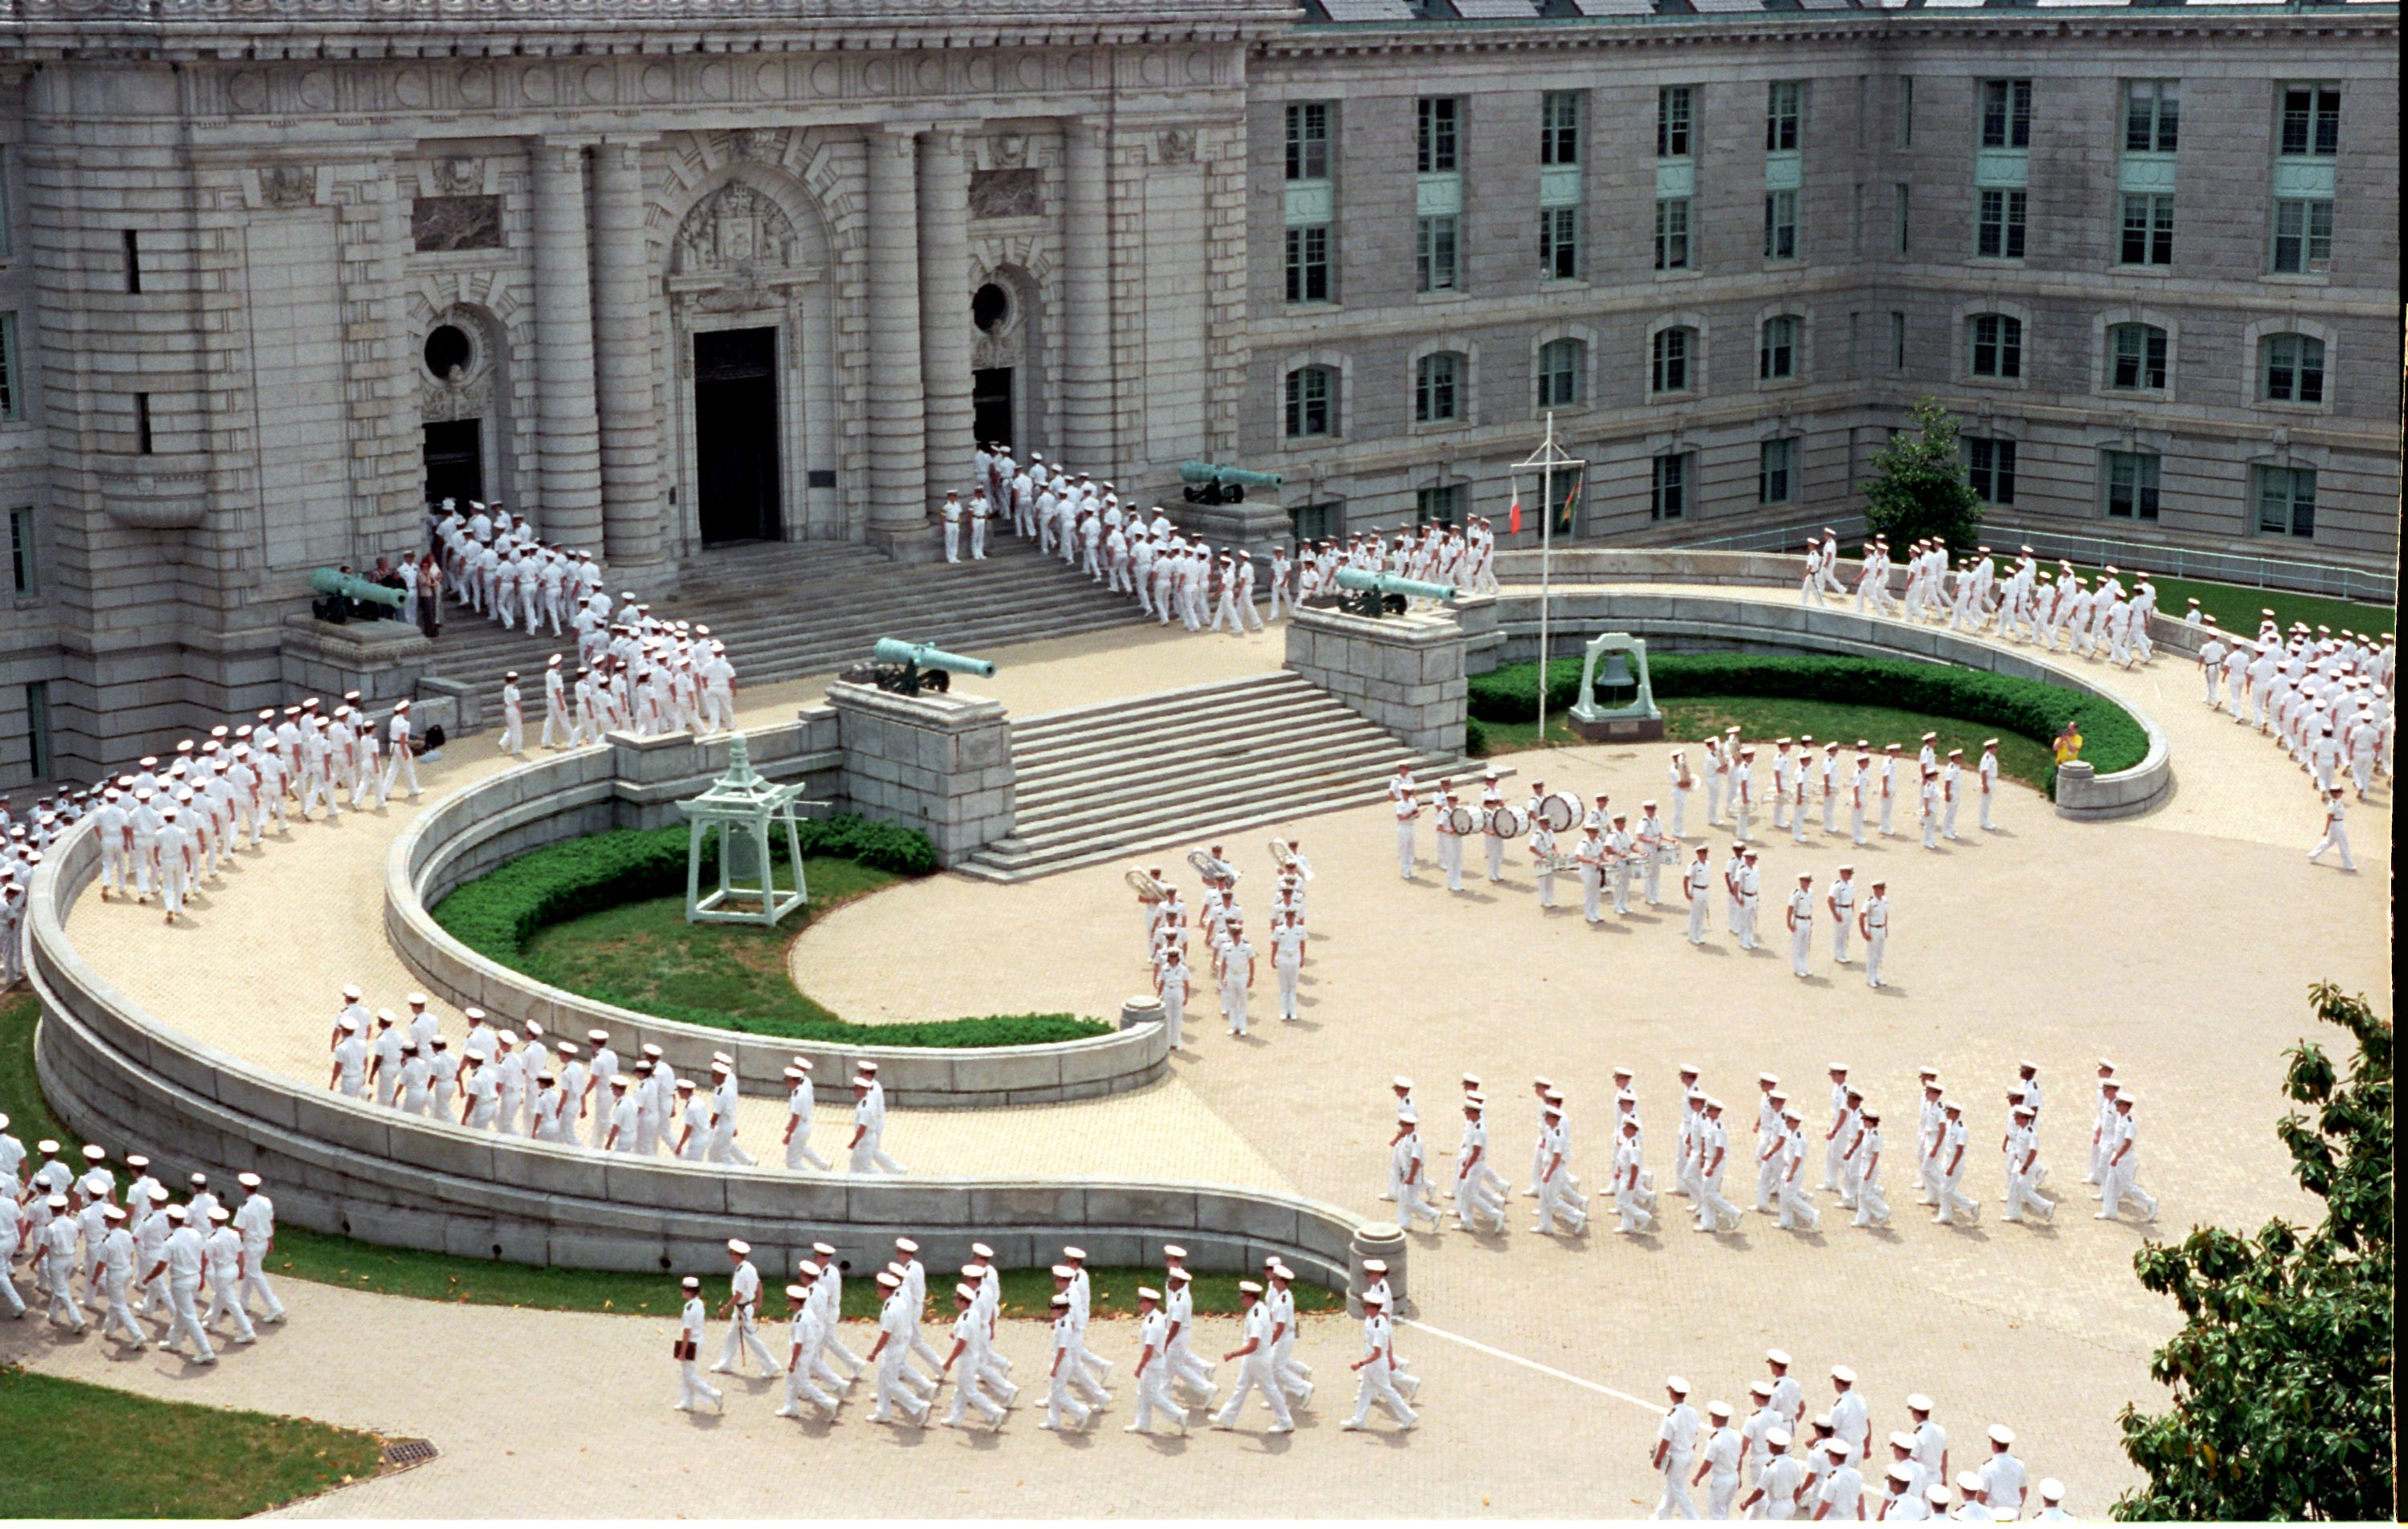 What exactly do I have to do to be accepted into the United States Naval Academy?